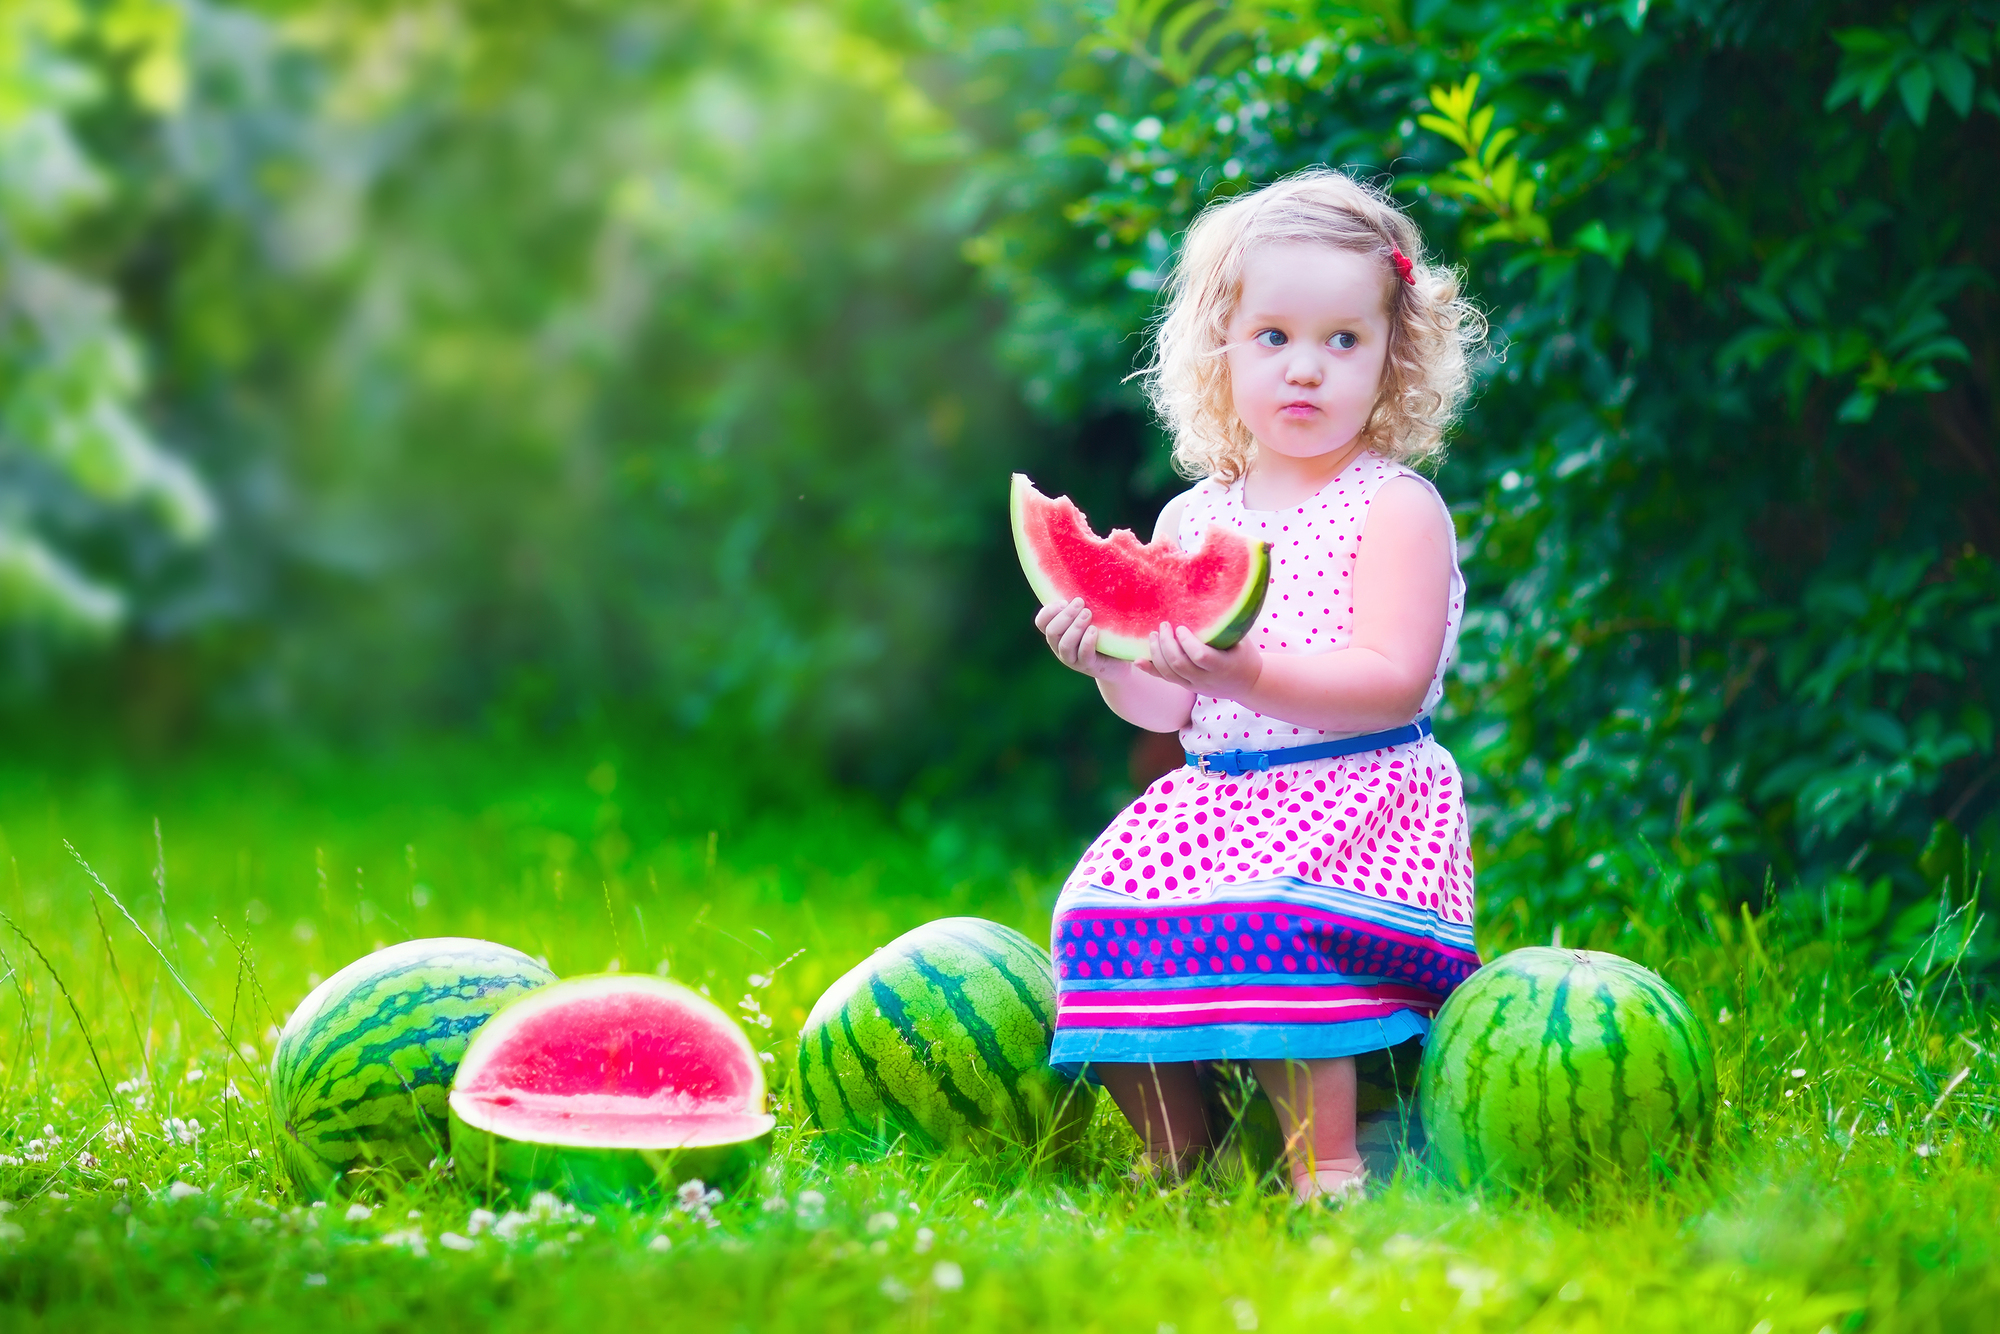 Beautiful Baby Girl Hd Wallpapers 1080p Baby Hd Wallpapers Free